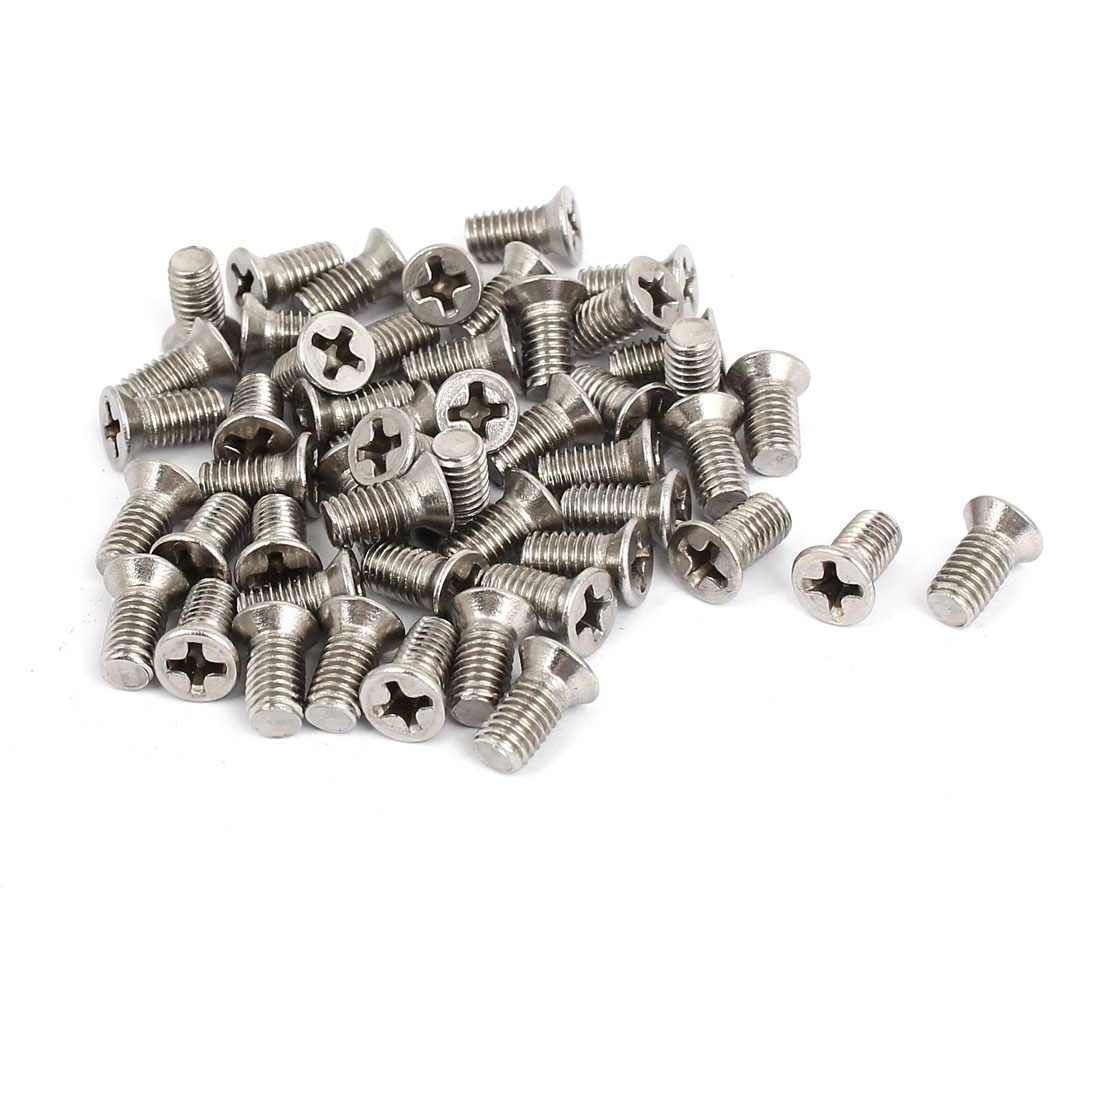 M5x10mm Stainless Steel Countersunk Flat Head Cross Phillips Screw Bolts 50pcs